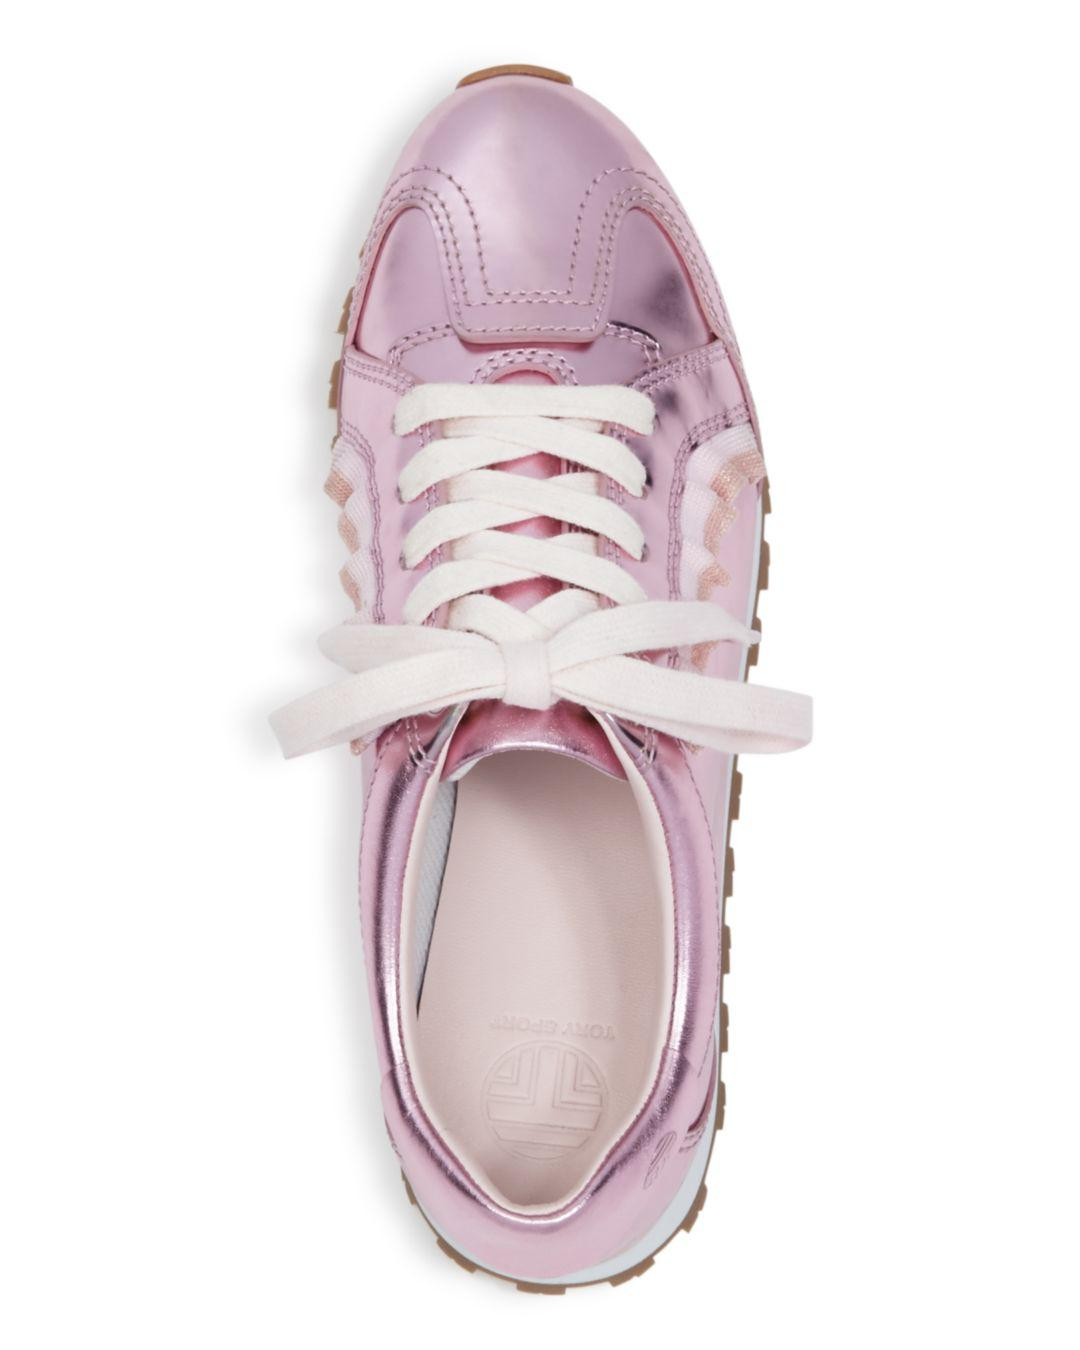 2d54ace8117 Tory Sport - Metallic Women s Ruffle Trainer Leather Lace Up Sneakers -  Lyst. View fullscreen